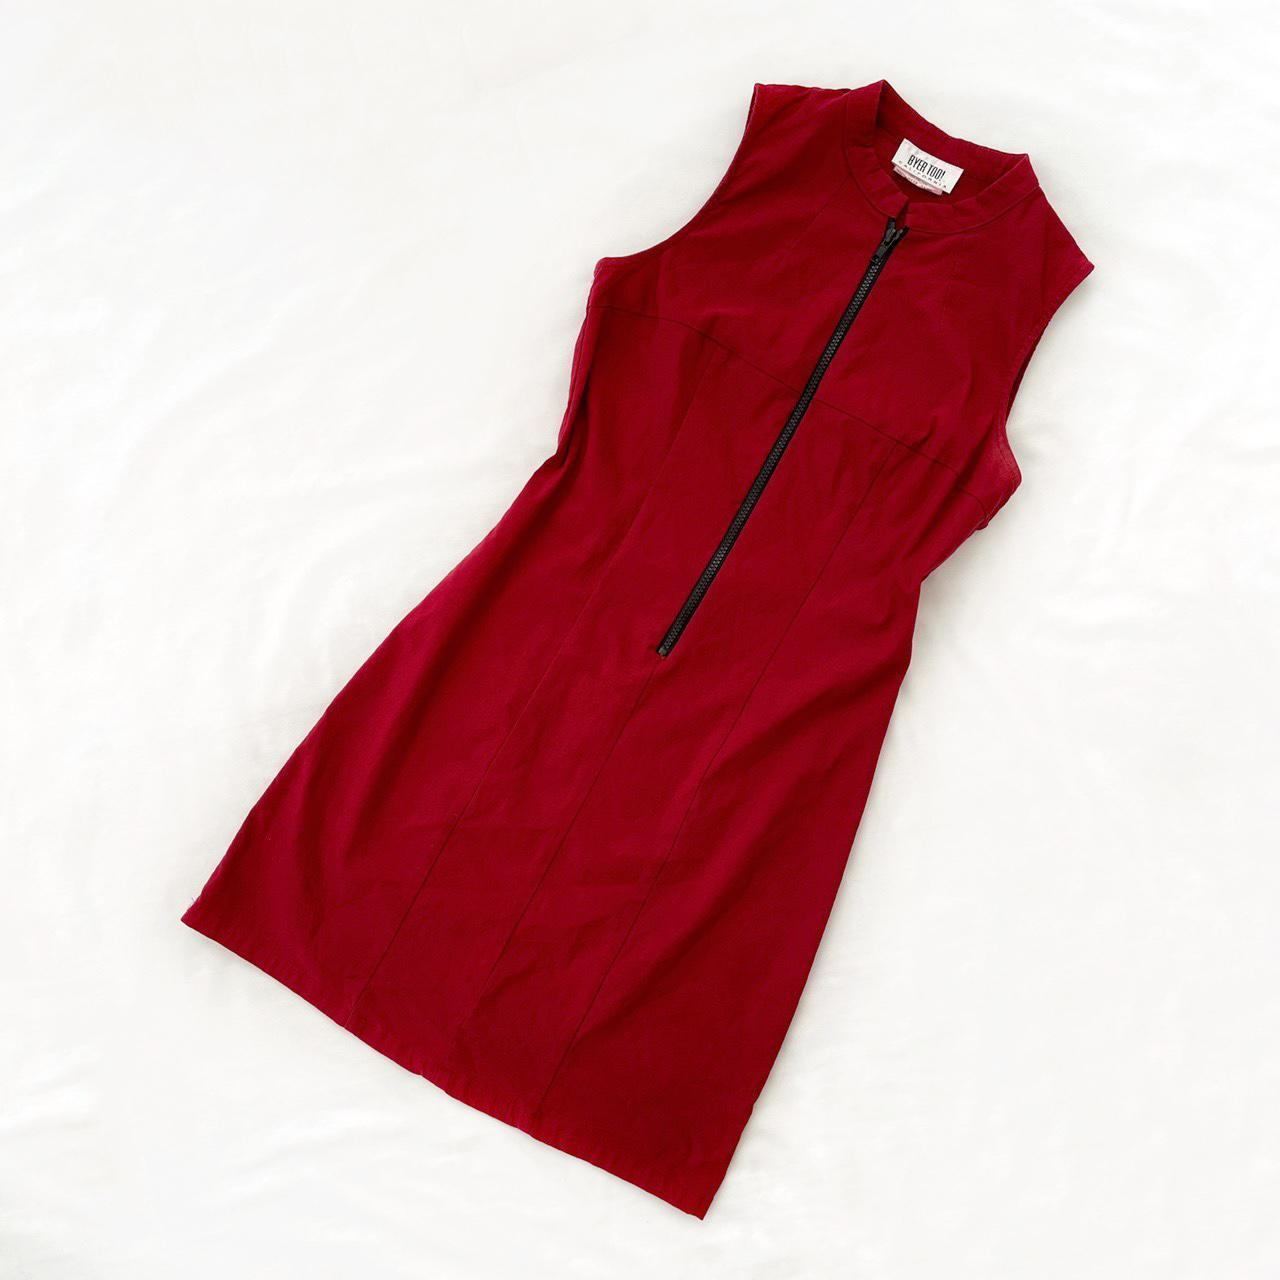 Product Image 1 - Vintage zip front bodycon red